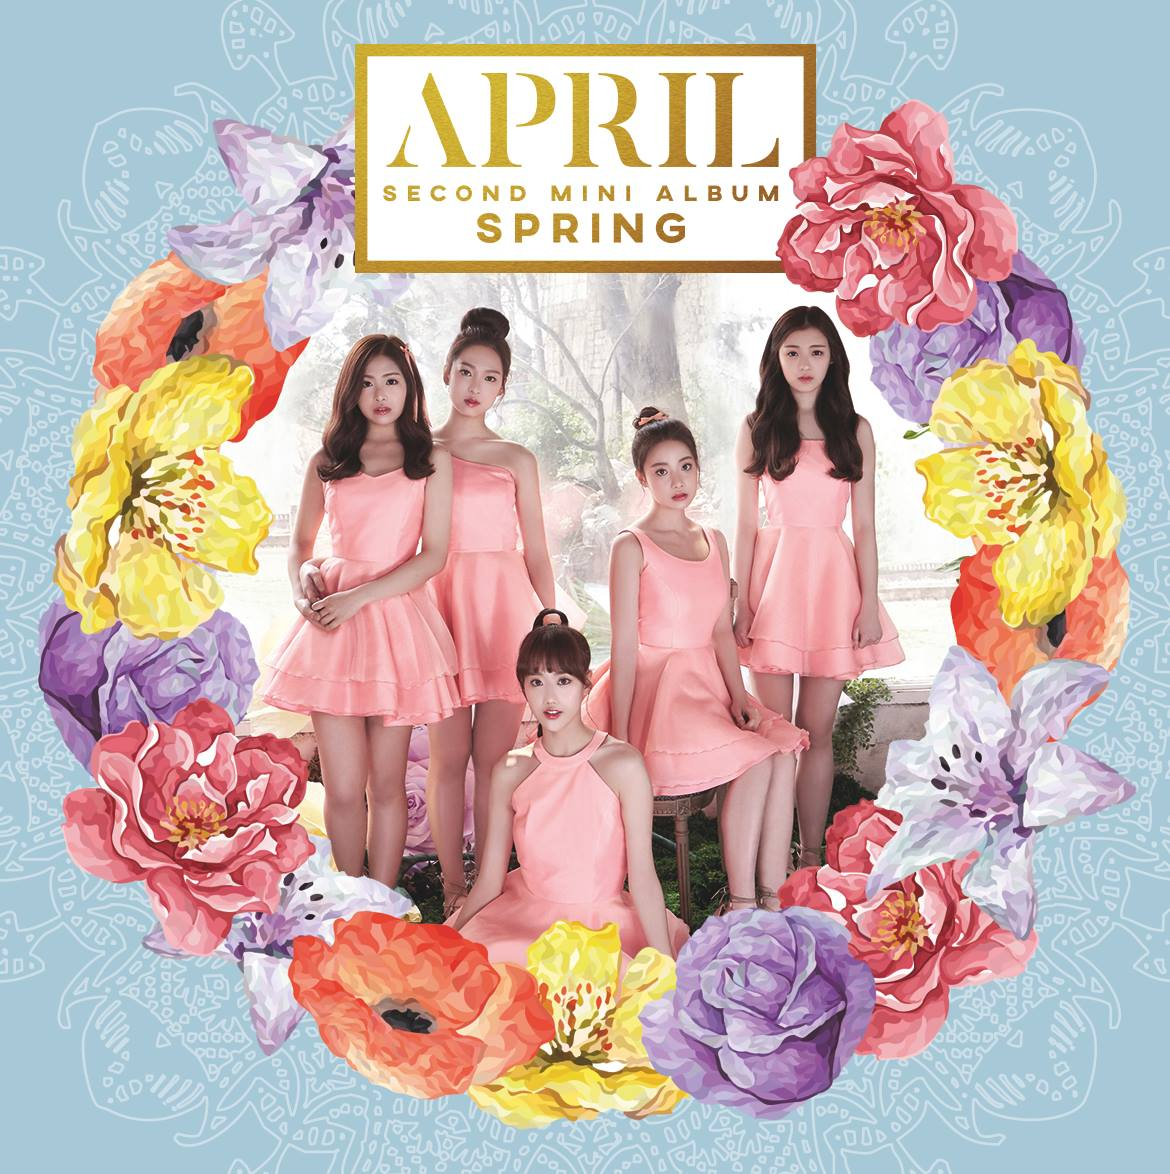 april-second-mini-album-spring-.jpg